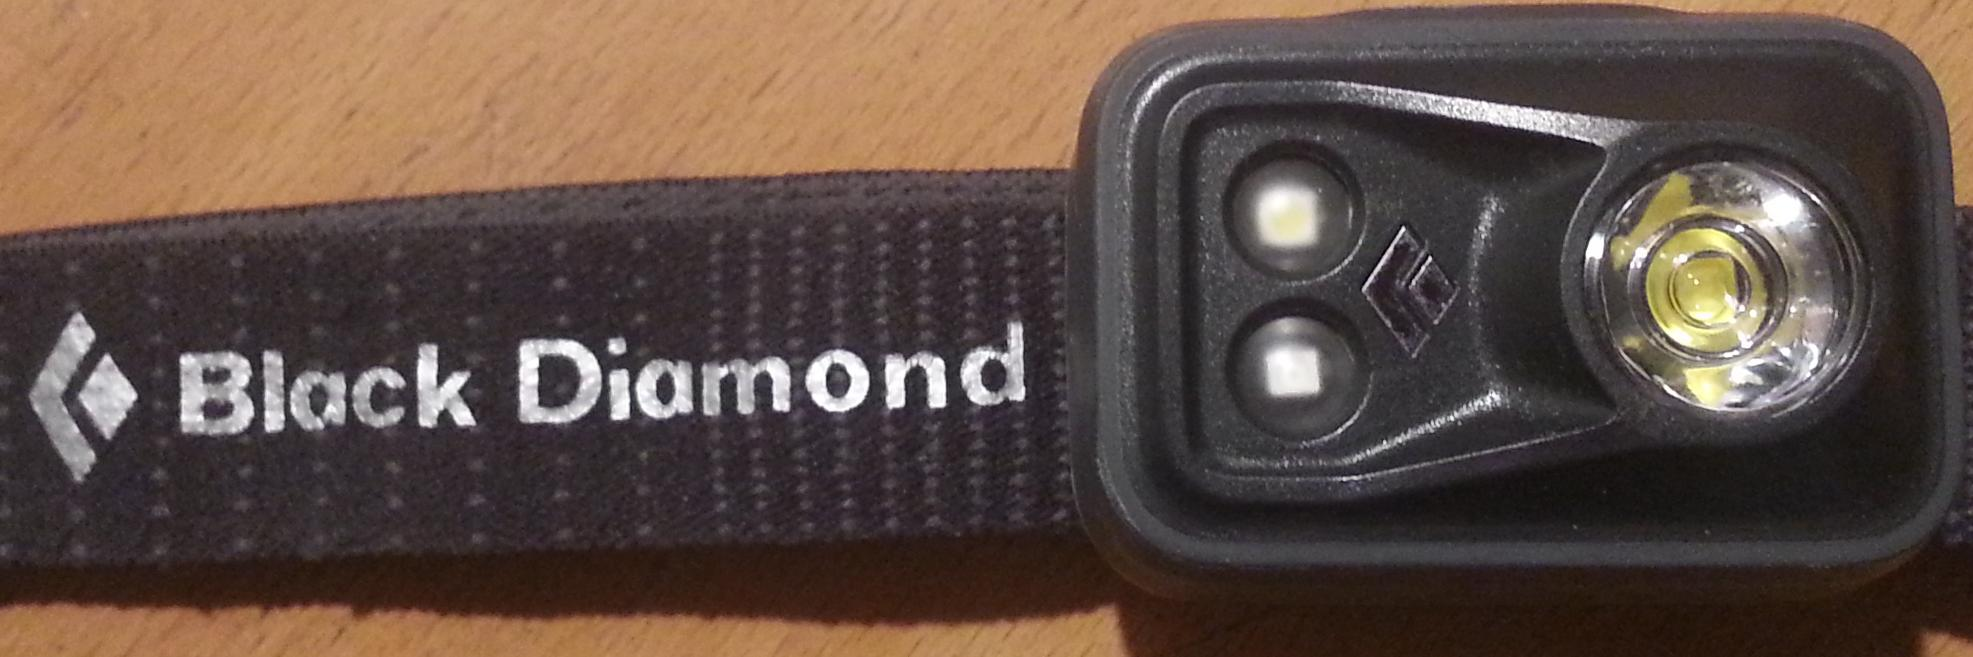 Test Lampe Frontale Black Diamond Cosmo Carnet D Un Ultra